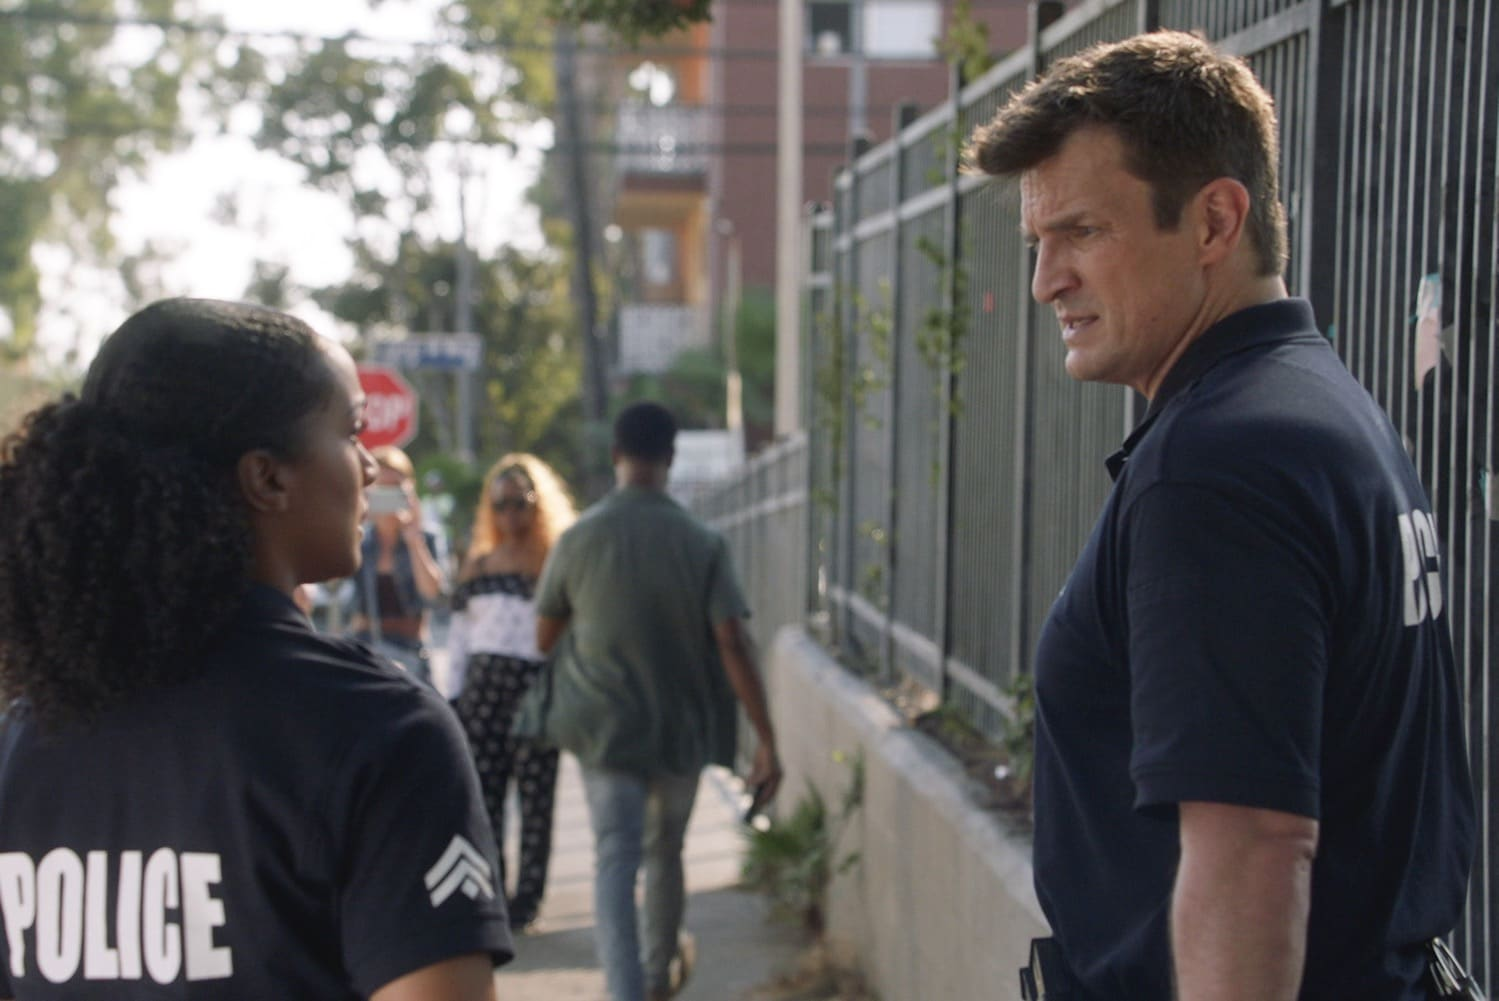 """THE ROOKIE Season 3 Episode 2 - """"In Justice"""" – Officer John Nolan and Officer Nyla Harper are assigned to a community policing center to help rebuild their station's reputation in the community. Nolan is determined to make a positive impact but Nyla has her doubts on """"The Rookie,"""" SUNDAY, JAN. 10 (10:00-11:00 p.m. EST), on ABC. (ABC) NATHAN FILLION"""